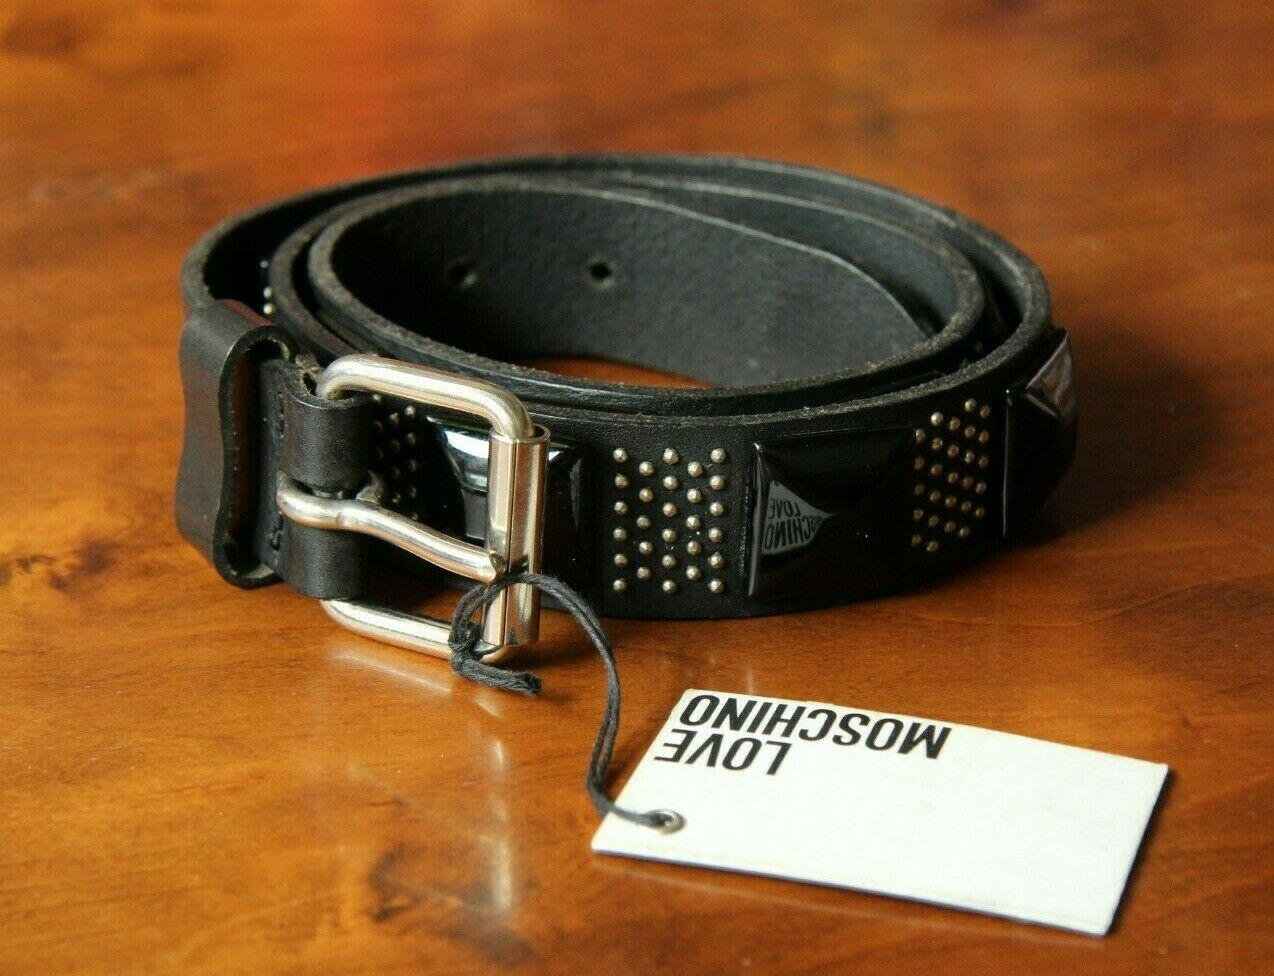 MOSCHINO Women's Black Belt 100% Leather Free Shipping Made in Italy New w tags